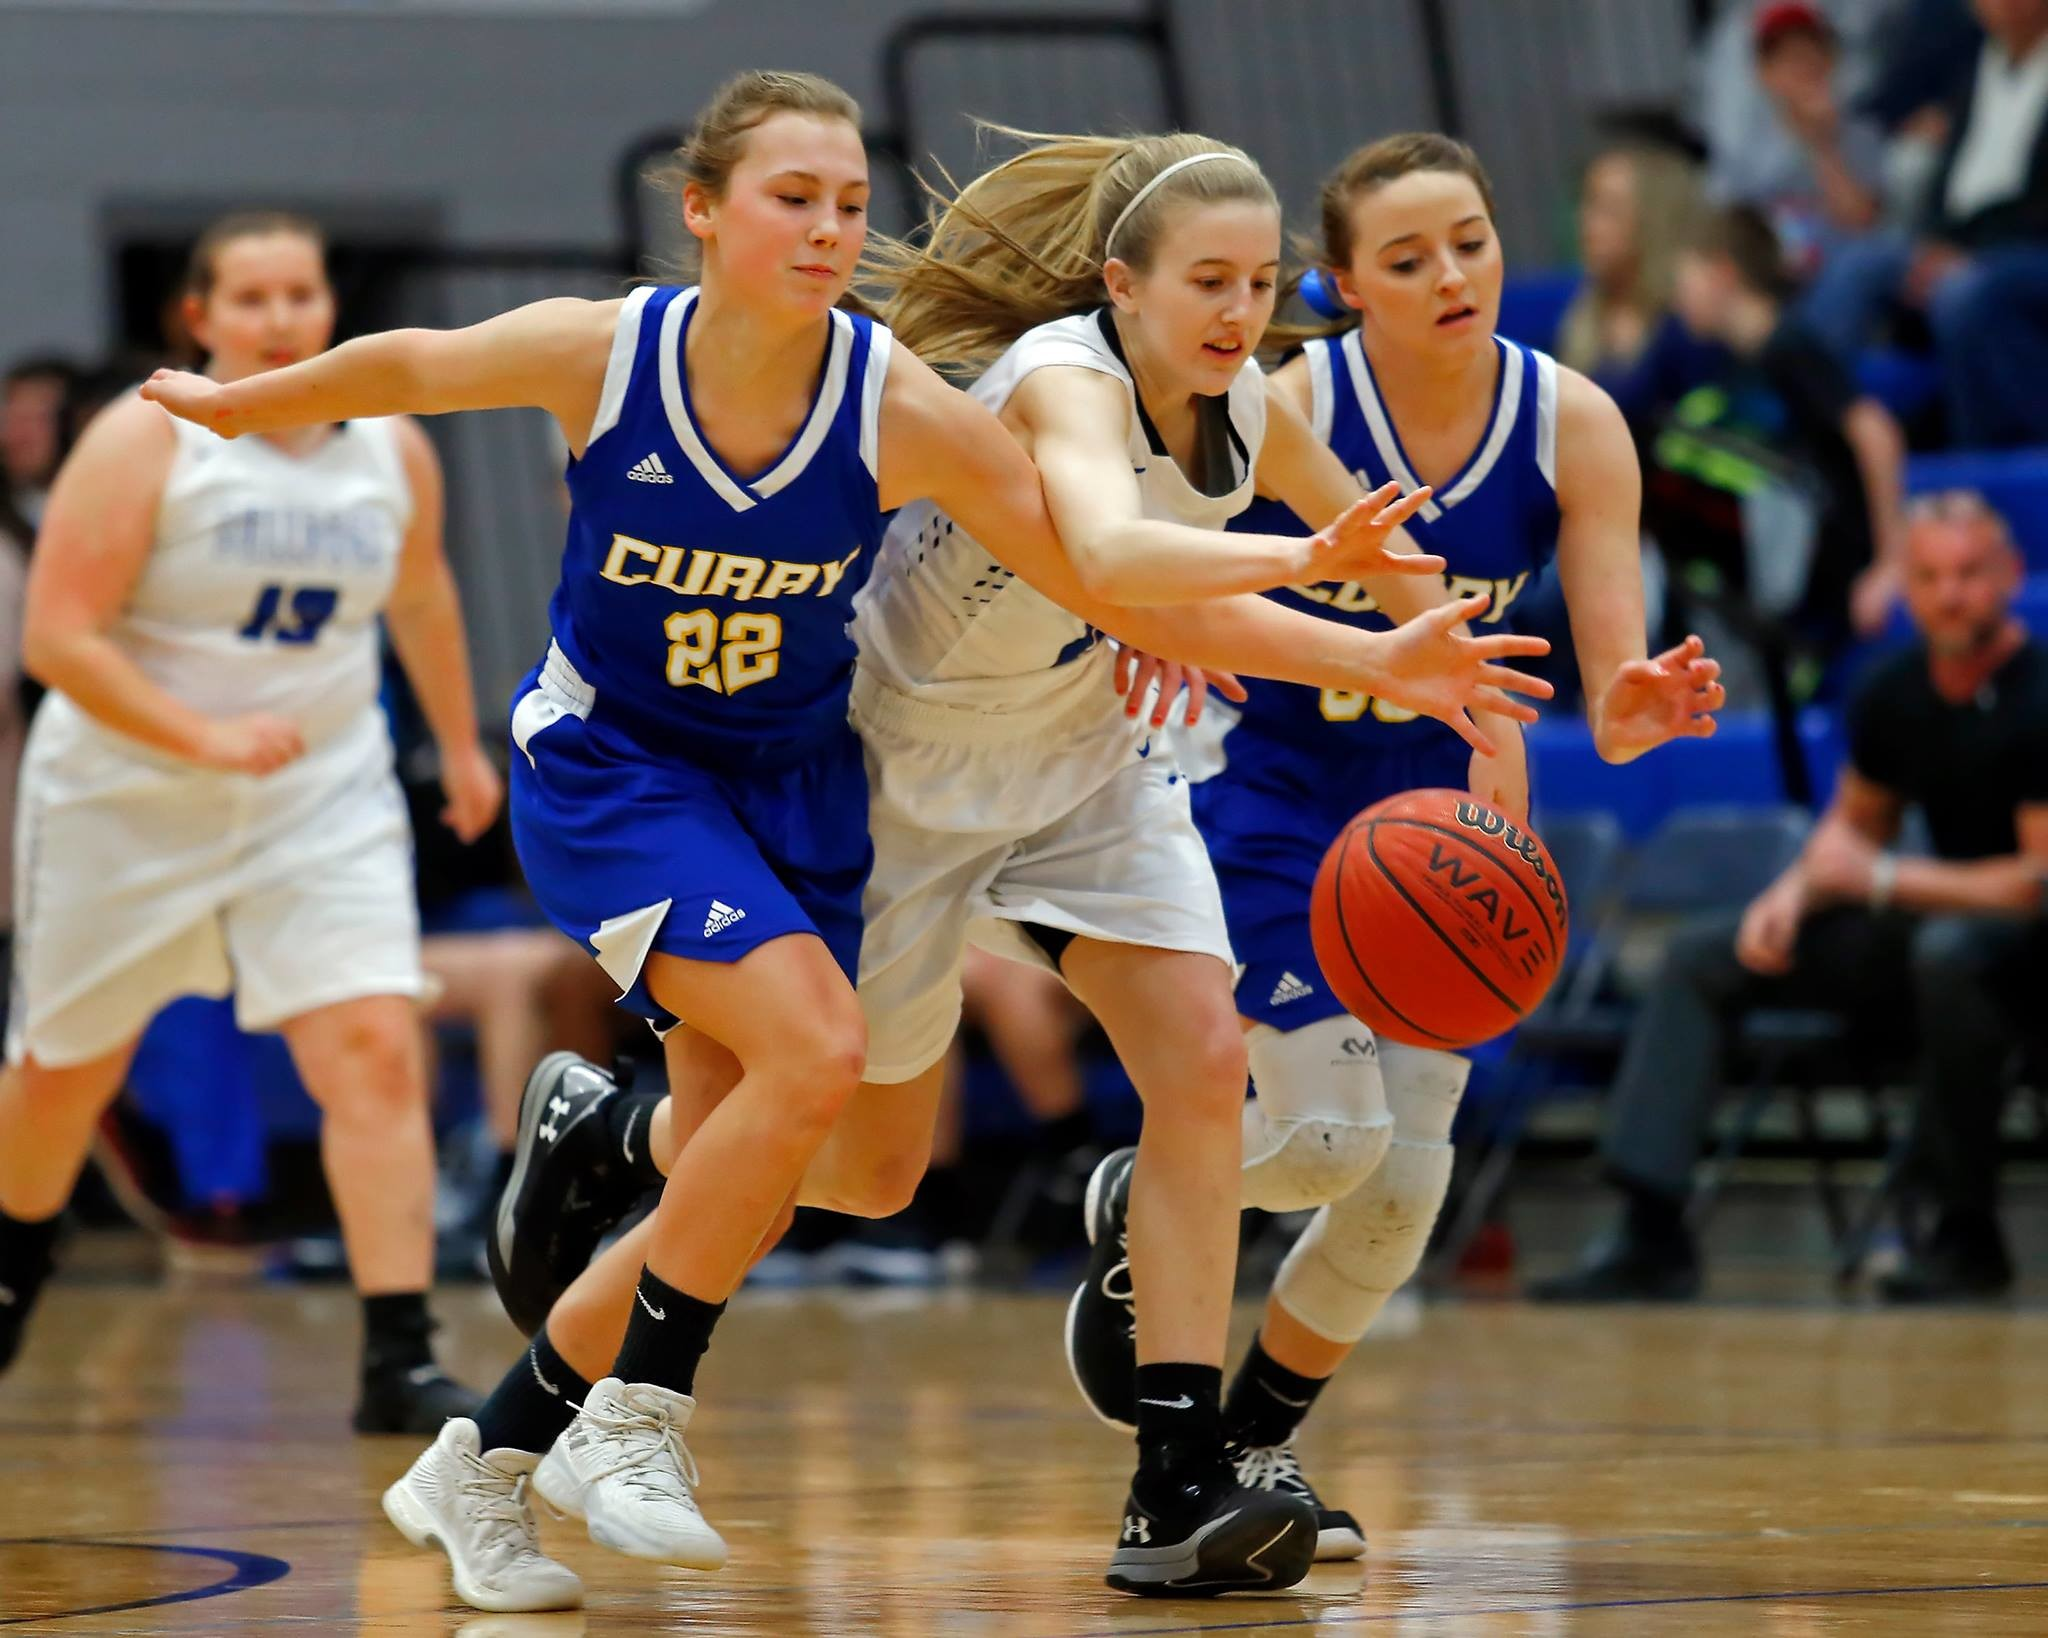 Carbon Hill's Abby Martin, center, battles Curry's Rae Ann Hall (22) and Kayla Sargent (33) for a loose ball on Friday night. Carbon Hill won the game 50-35.